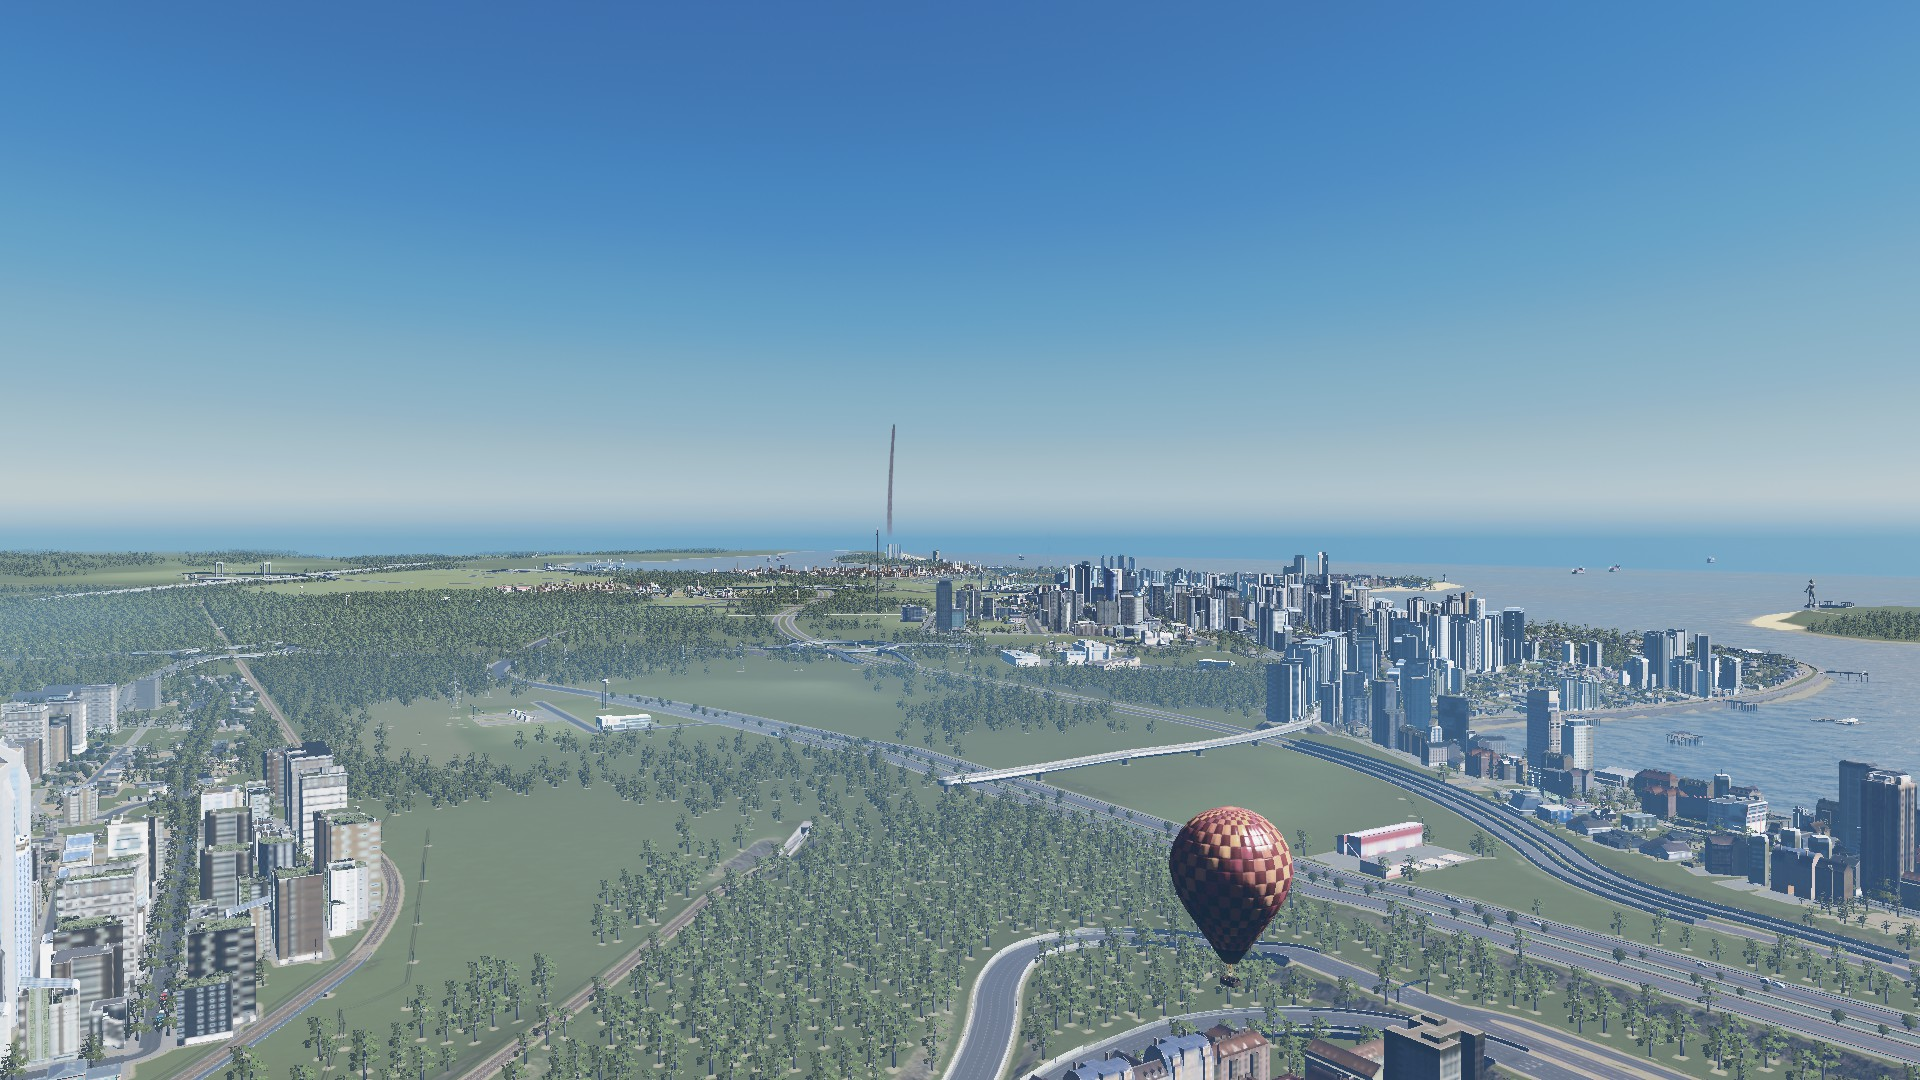 5, 4, 3, 2, 1 – LIFT OFF (in #CitiesSkylines )